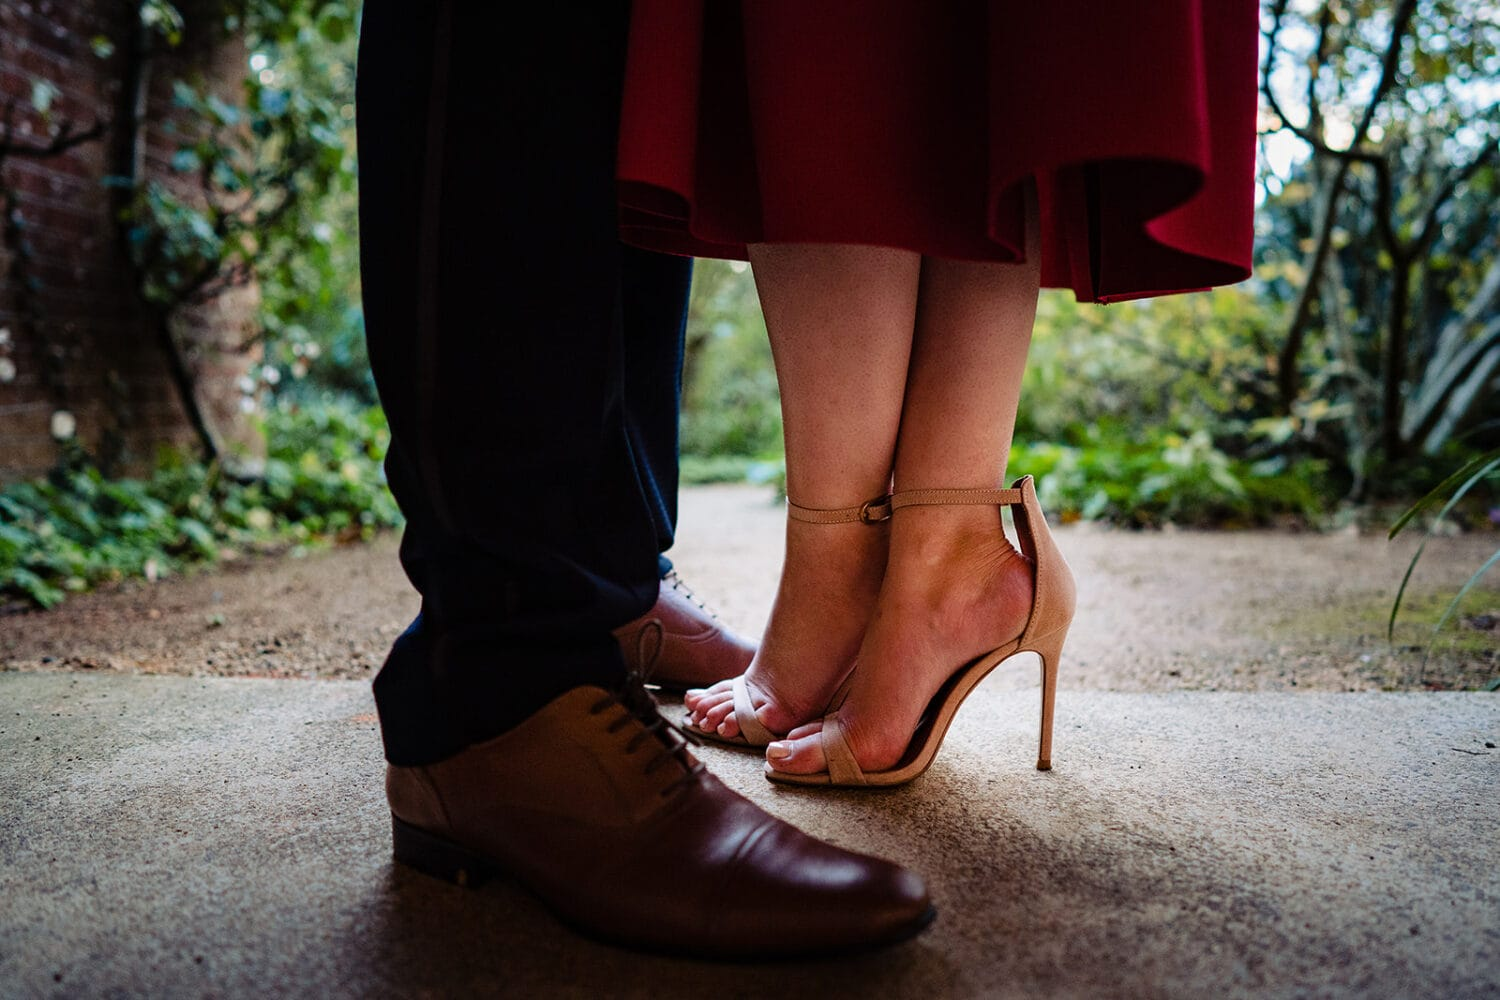 Engaged couple's feet standing close